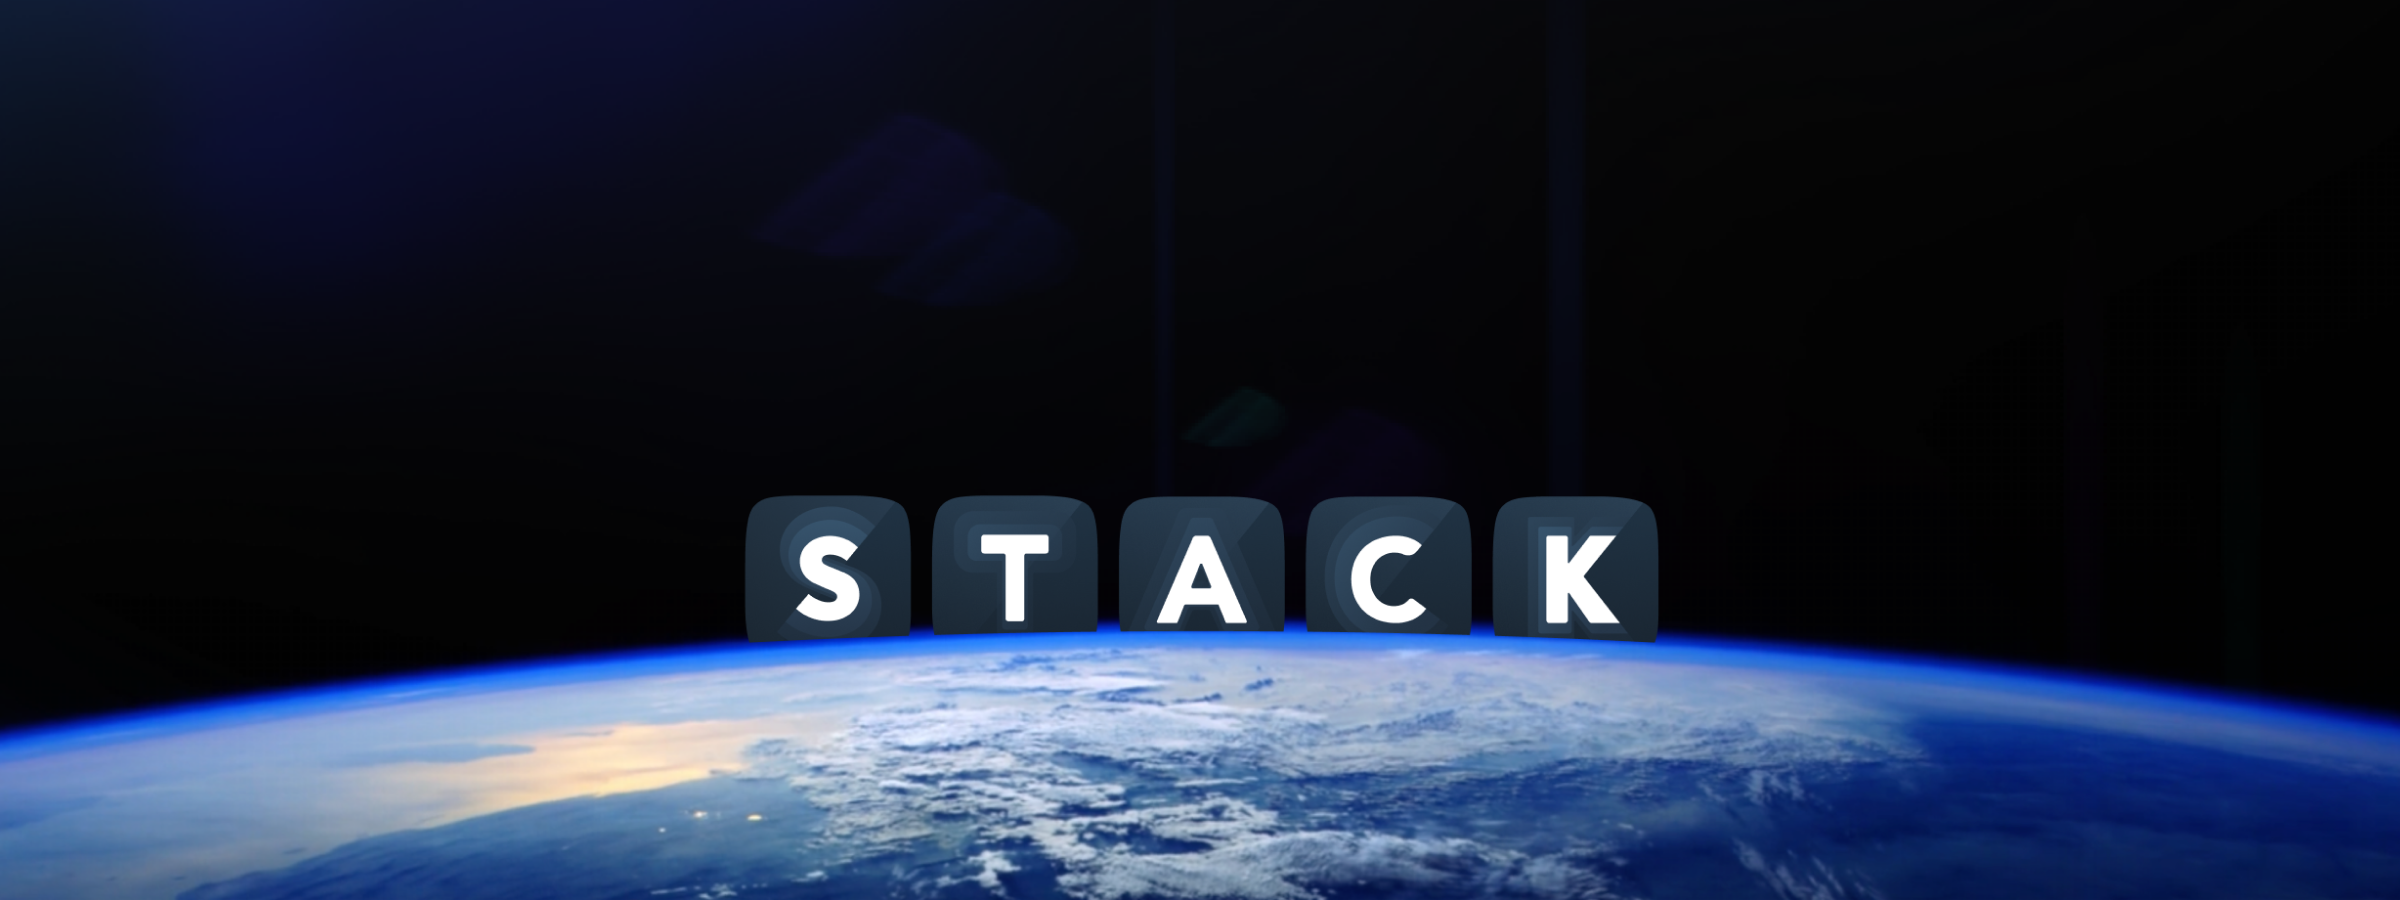 How to use Stack like a True Stacker